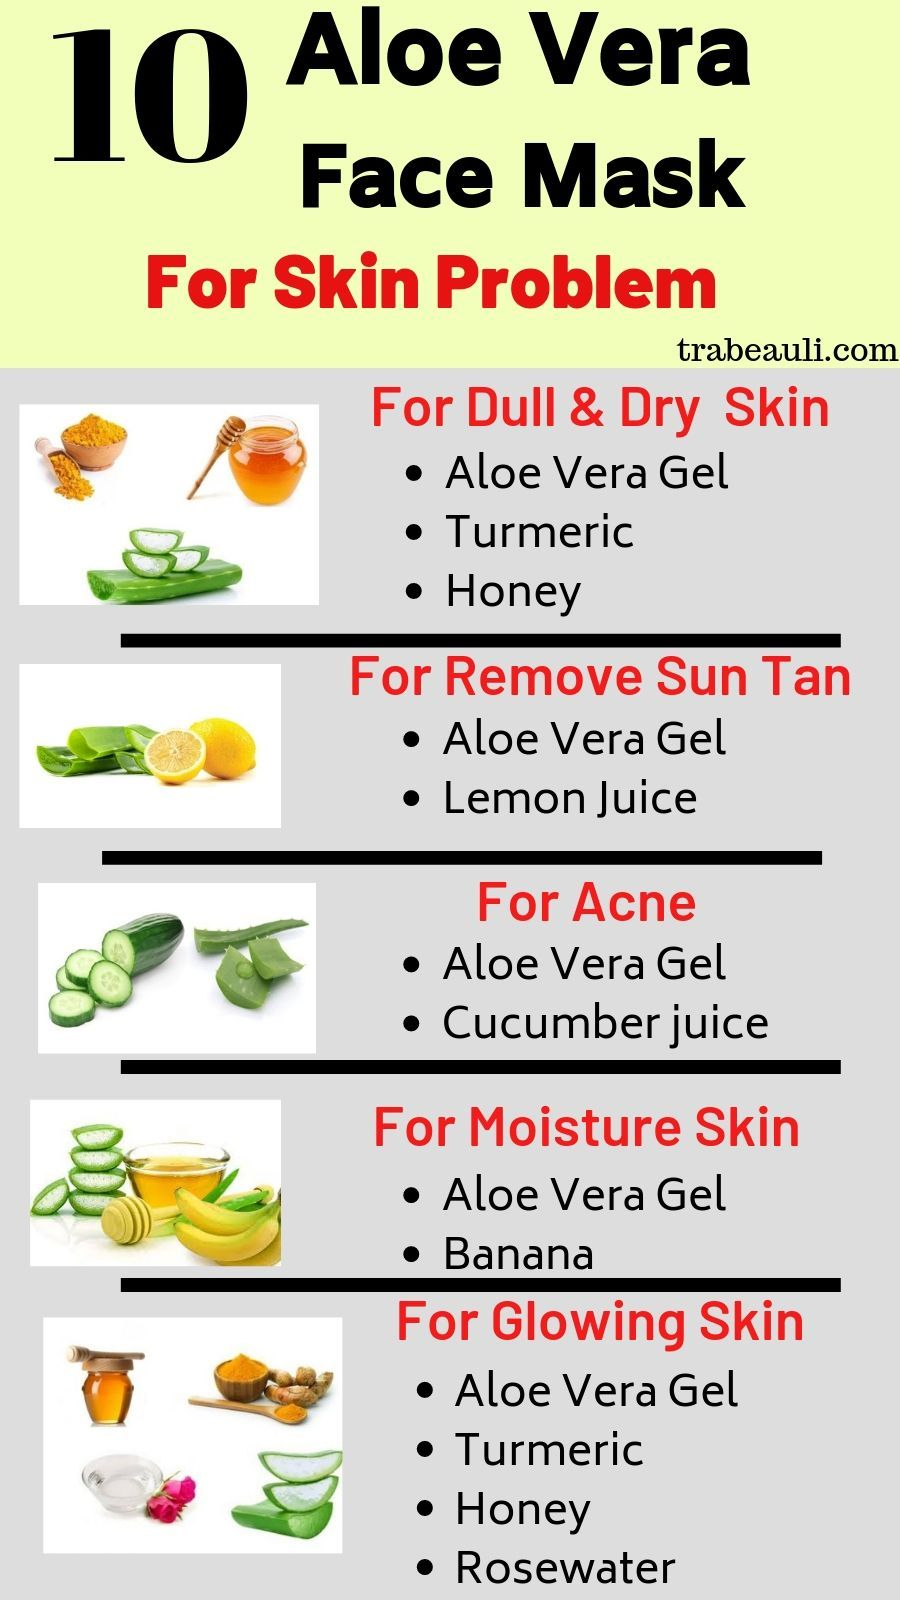 25 Proven Health Benefits Of Aloe Vera Gel You Will Love It Trabeauli Aloe Vera Skin Care Mask For Dry Skin Aloe Vera For Skin